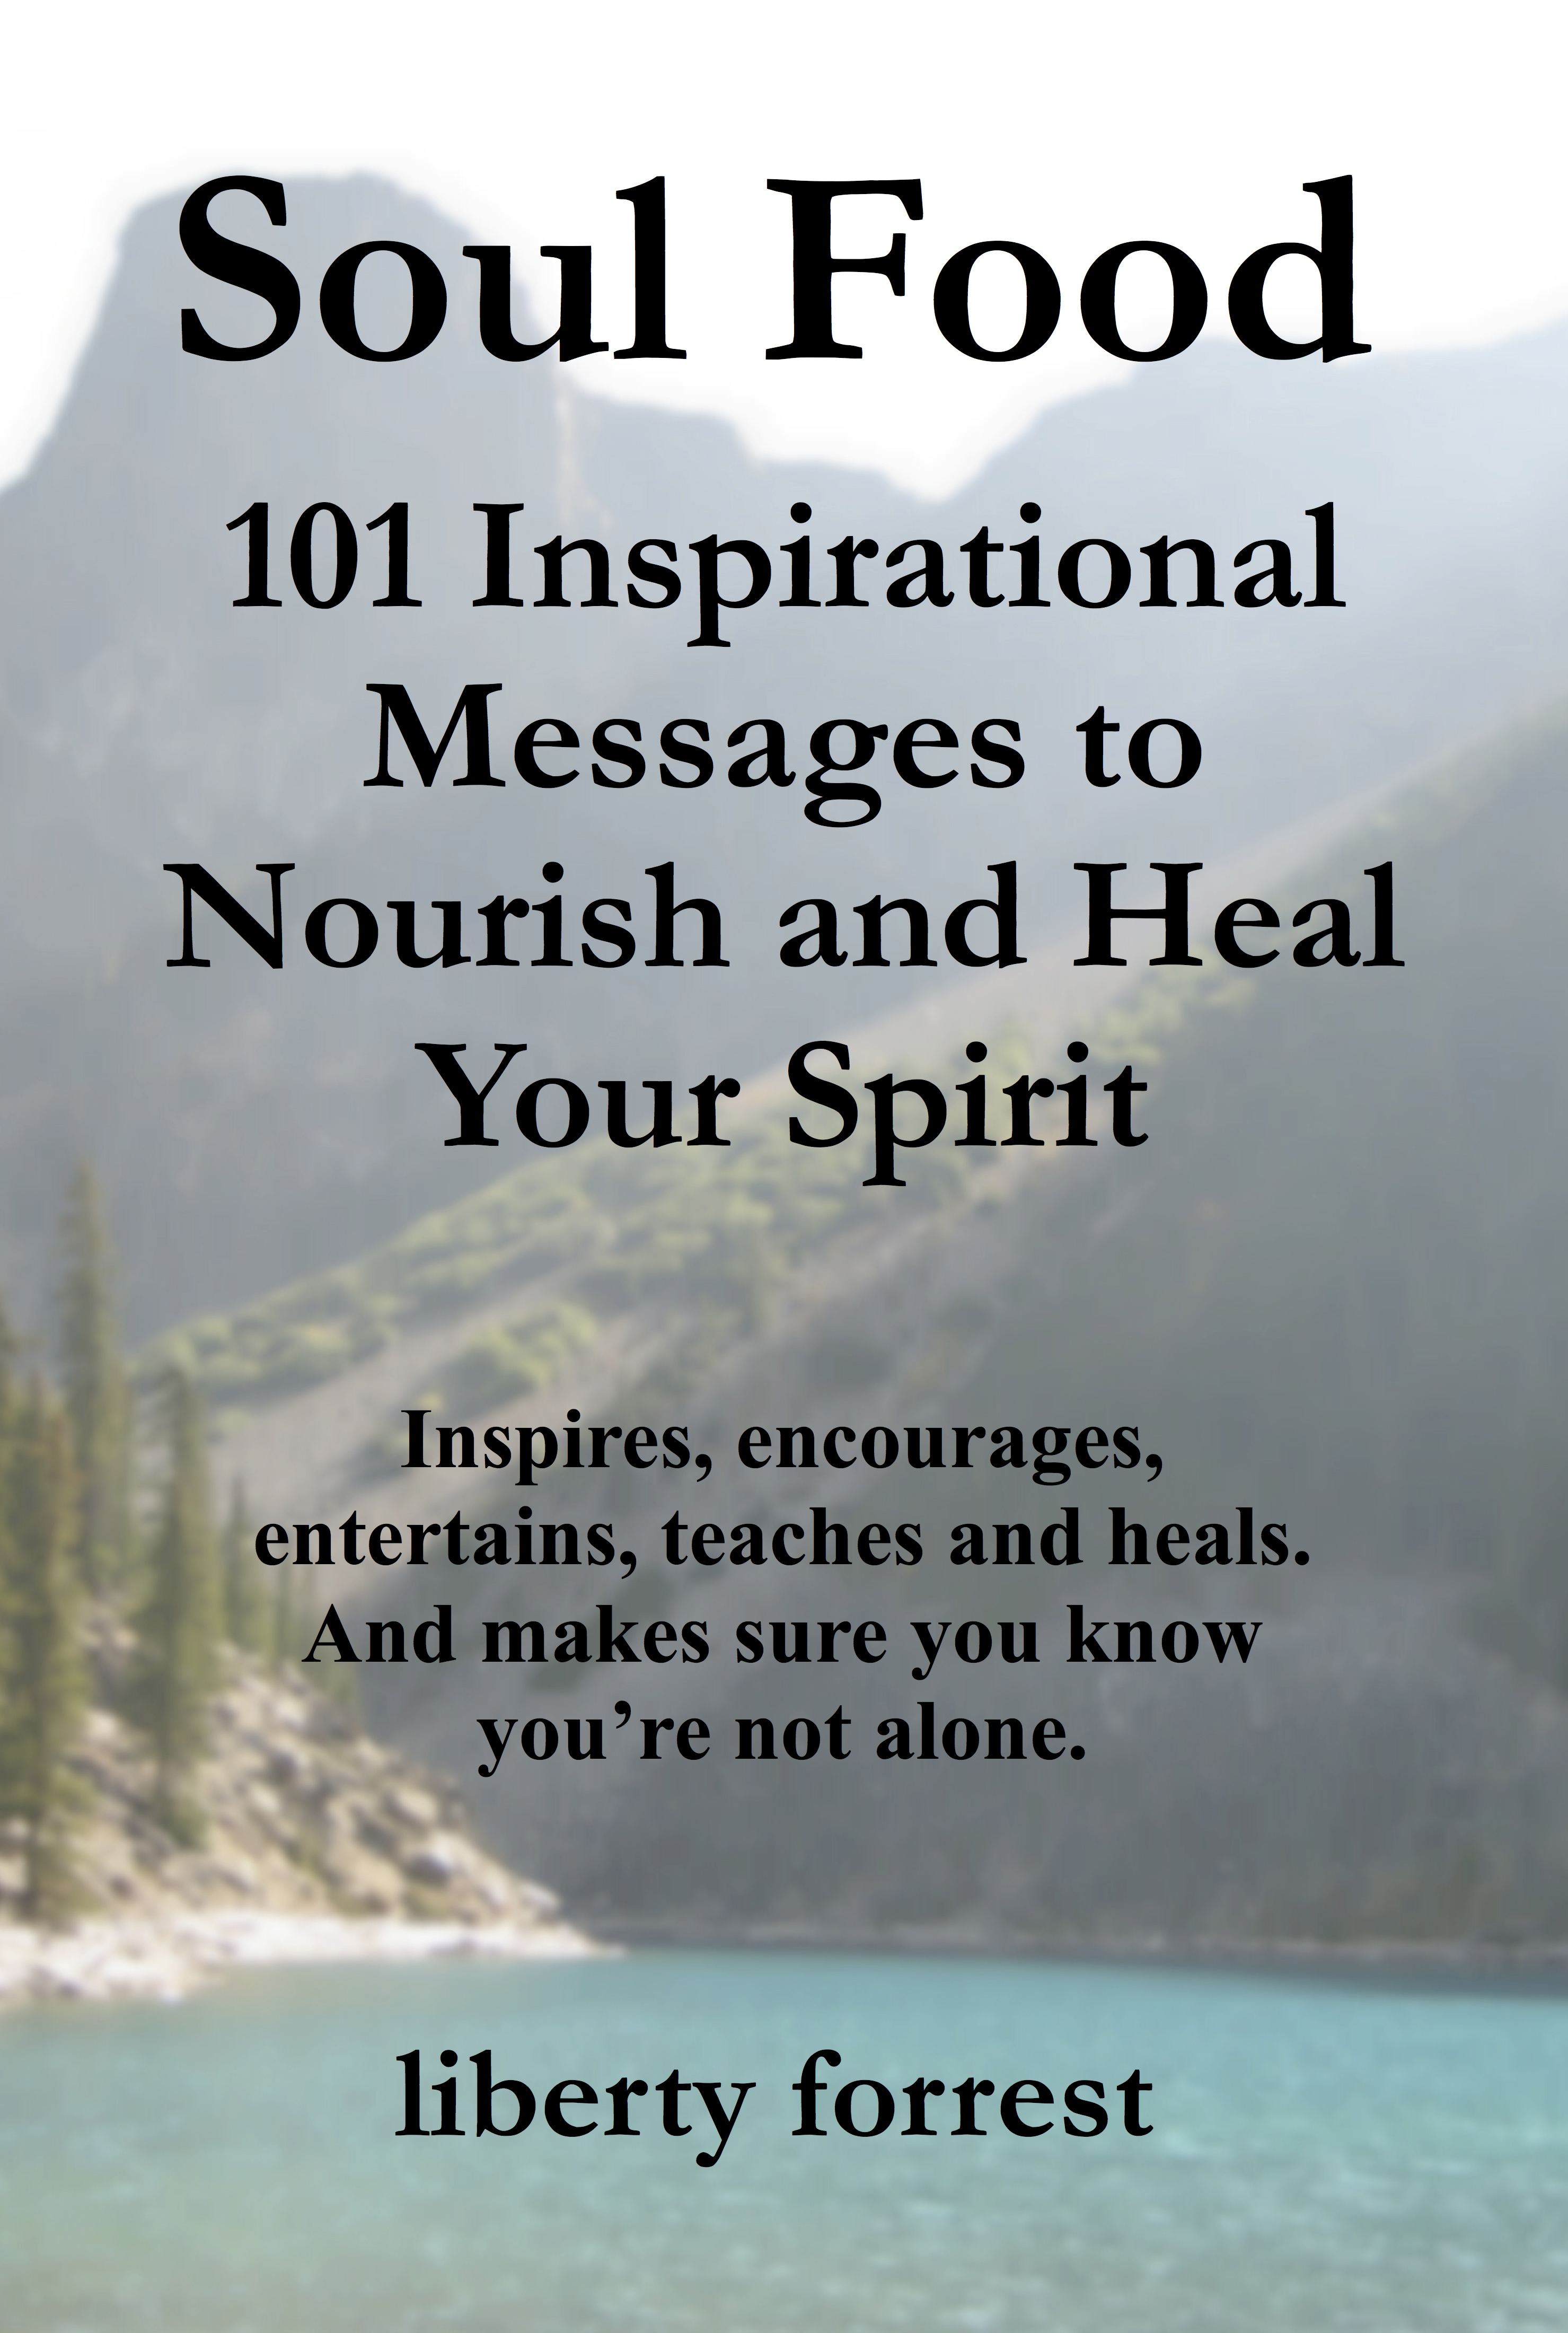 Inspirational Messages Smashwords  Soul Food 101 Inspirational Messages To Nourish And